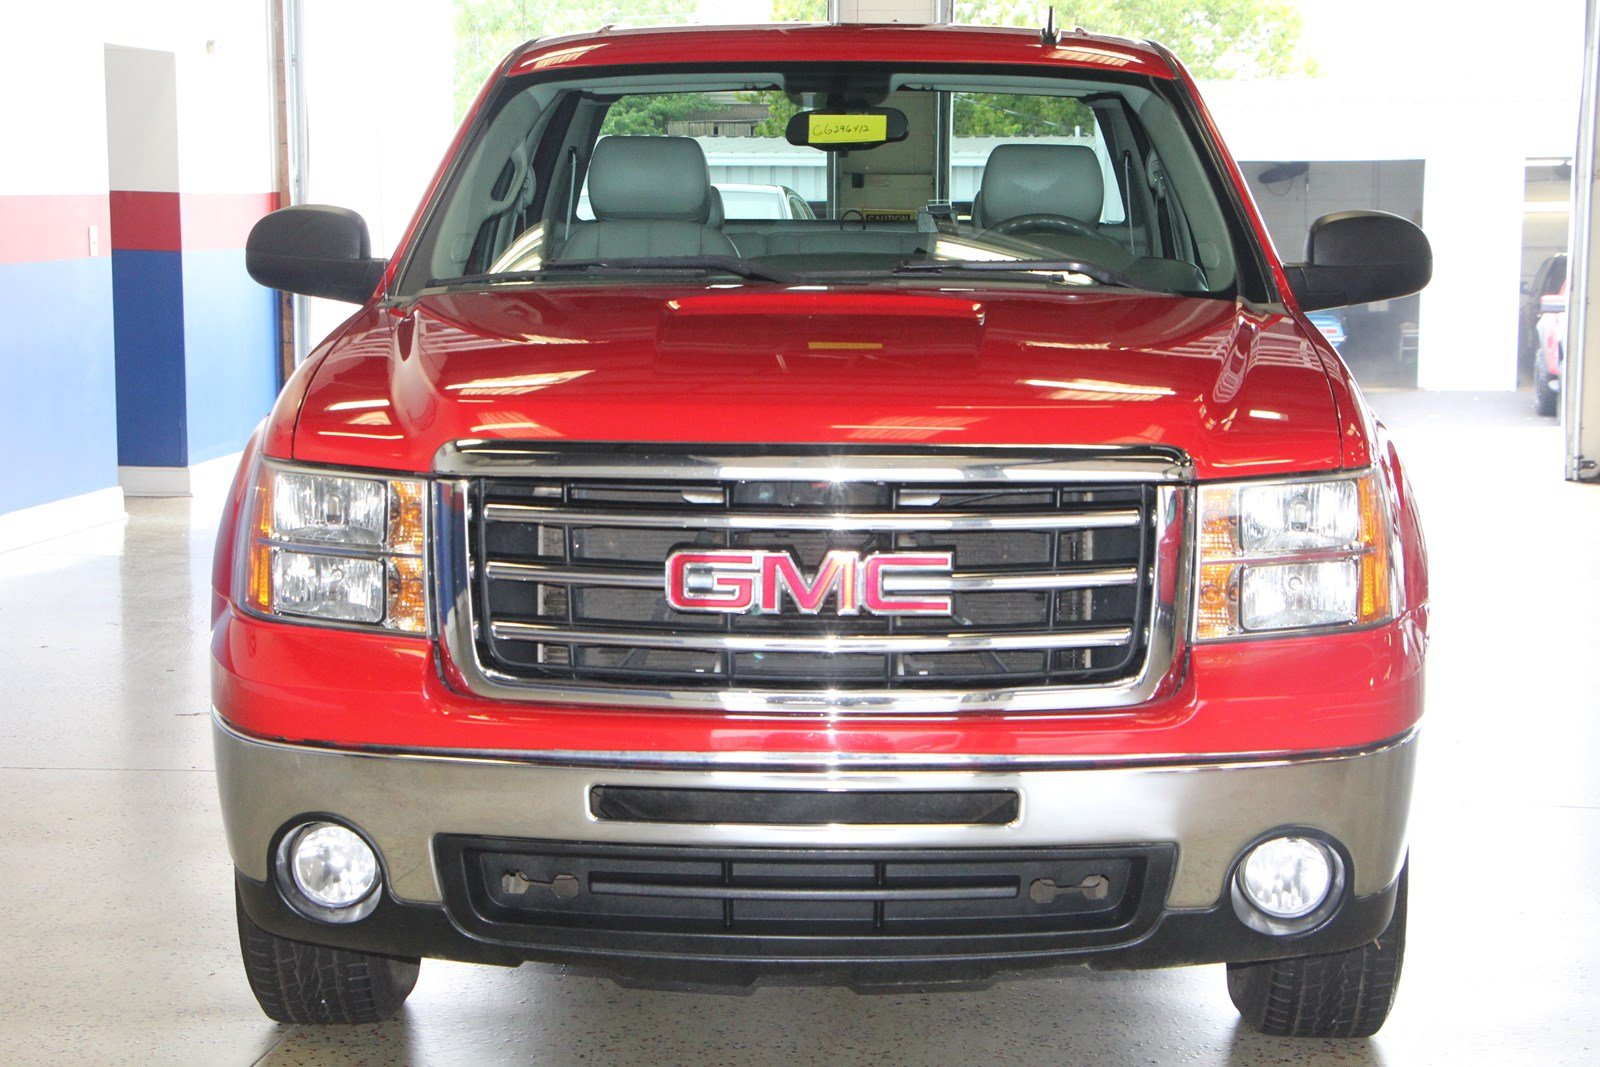 2012 Gmc Sierra 1500 Sle Crew Cab Pickup Near Nashville Cg296412 Wiring Harness 2007 2013 Plug And Play Fog Light Pre Owned